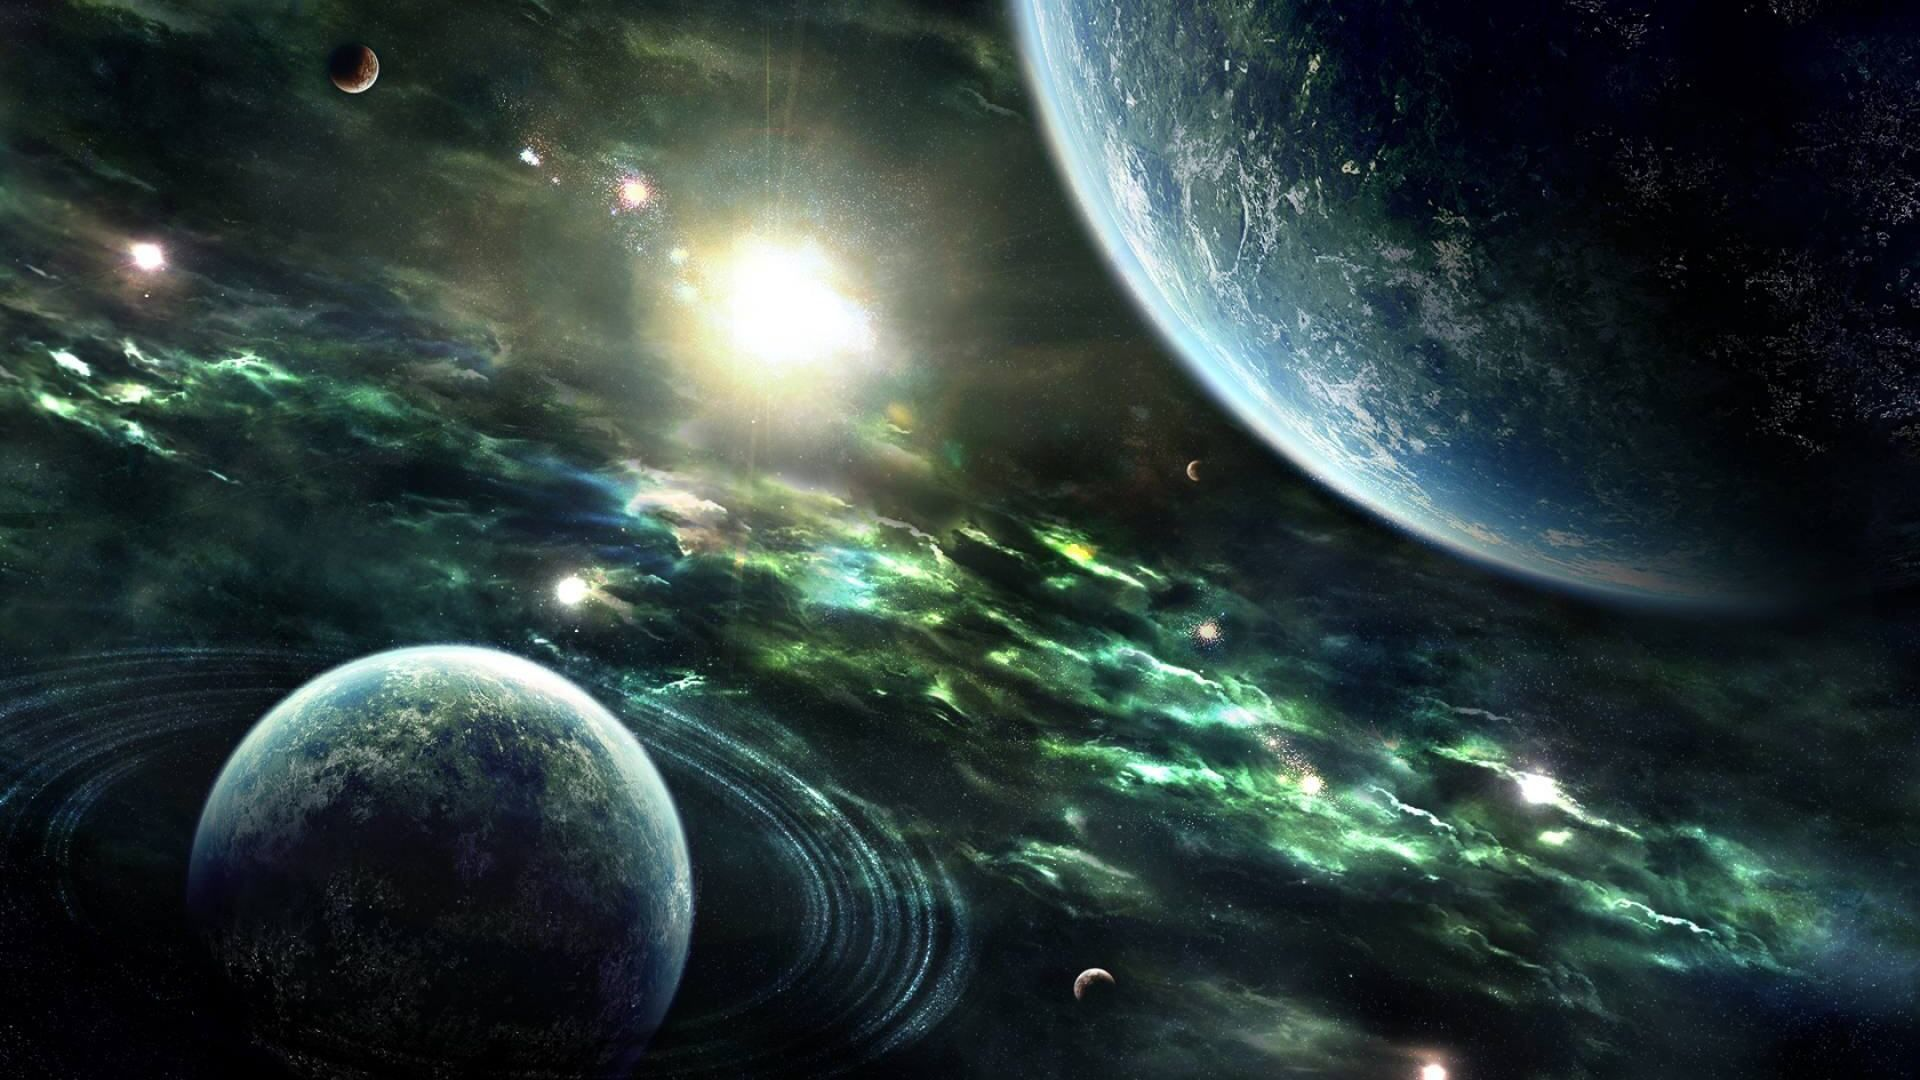 Outer Space Download Wallpaper